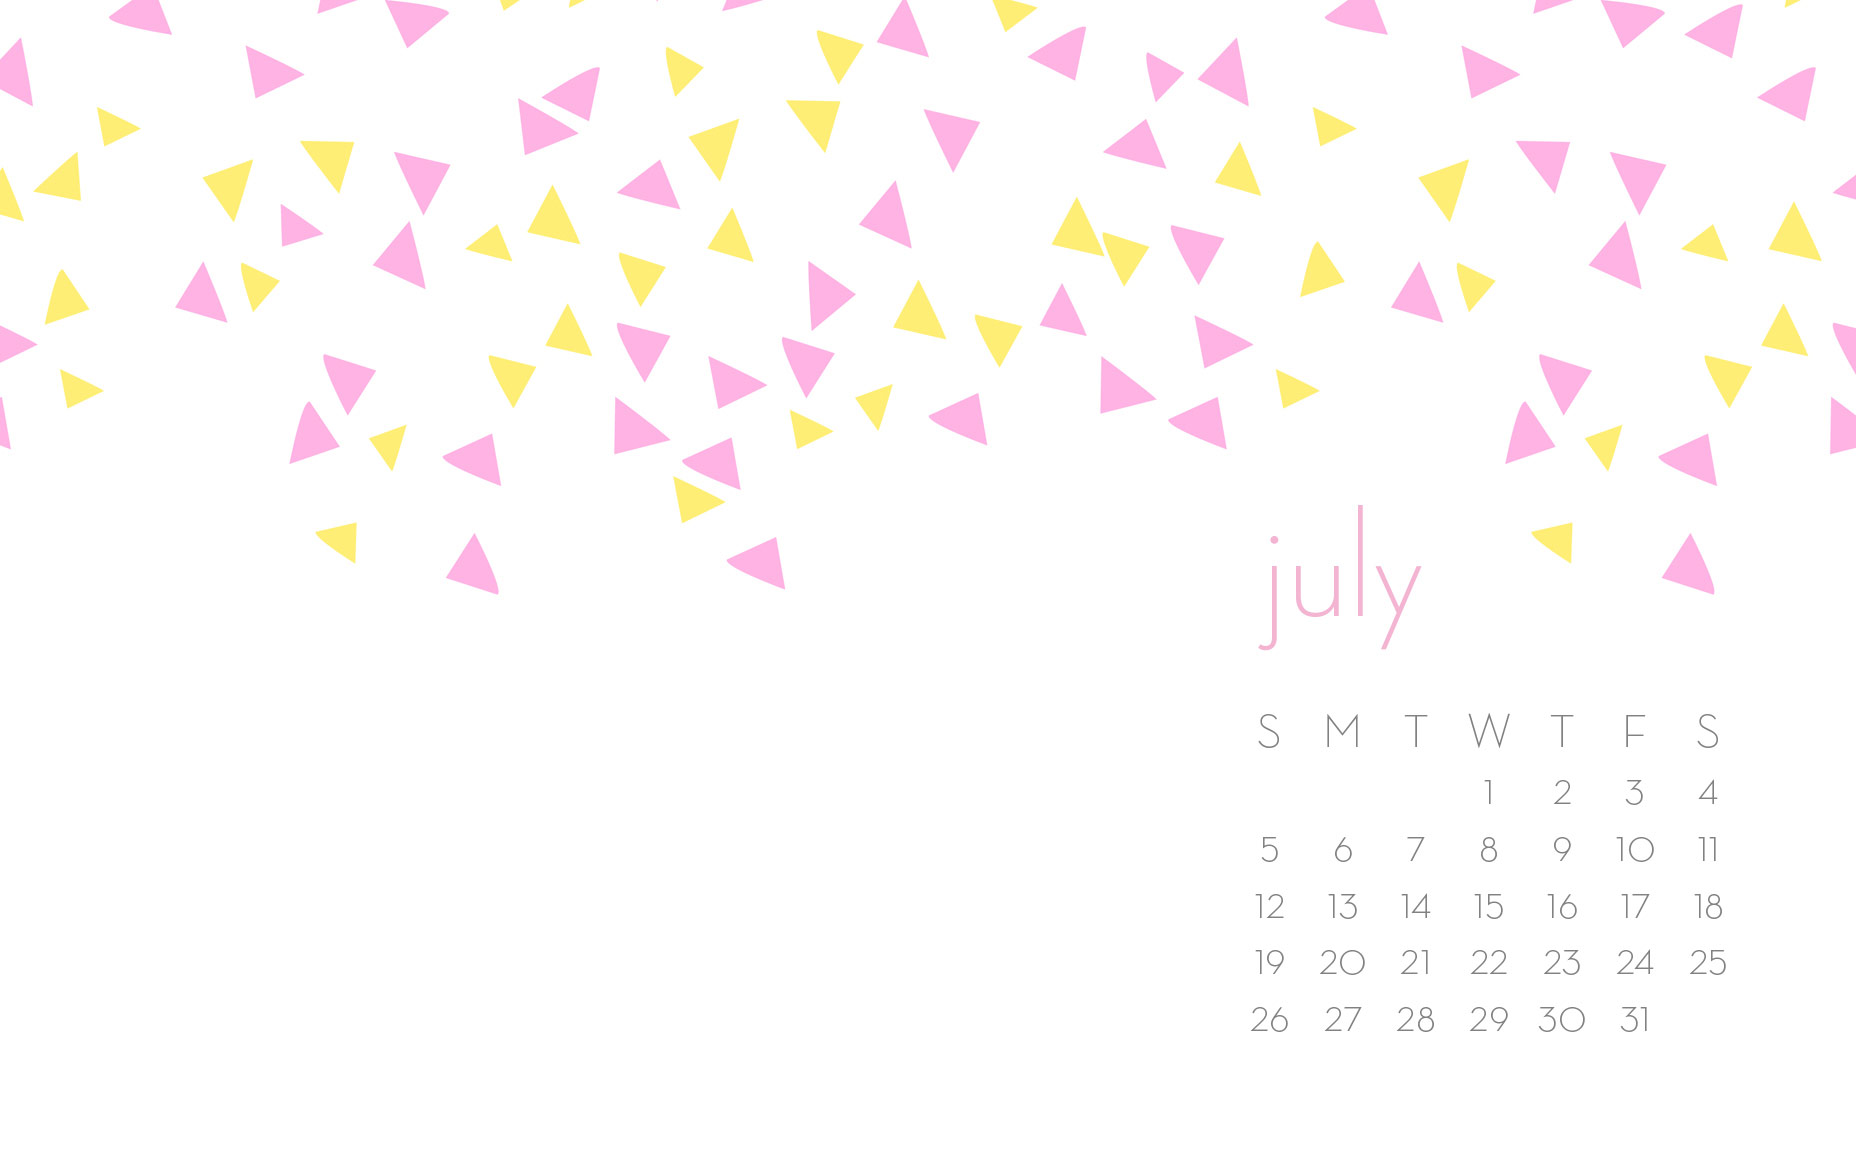 July 2015 Wallpaper Downloads